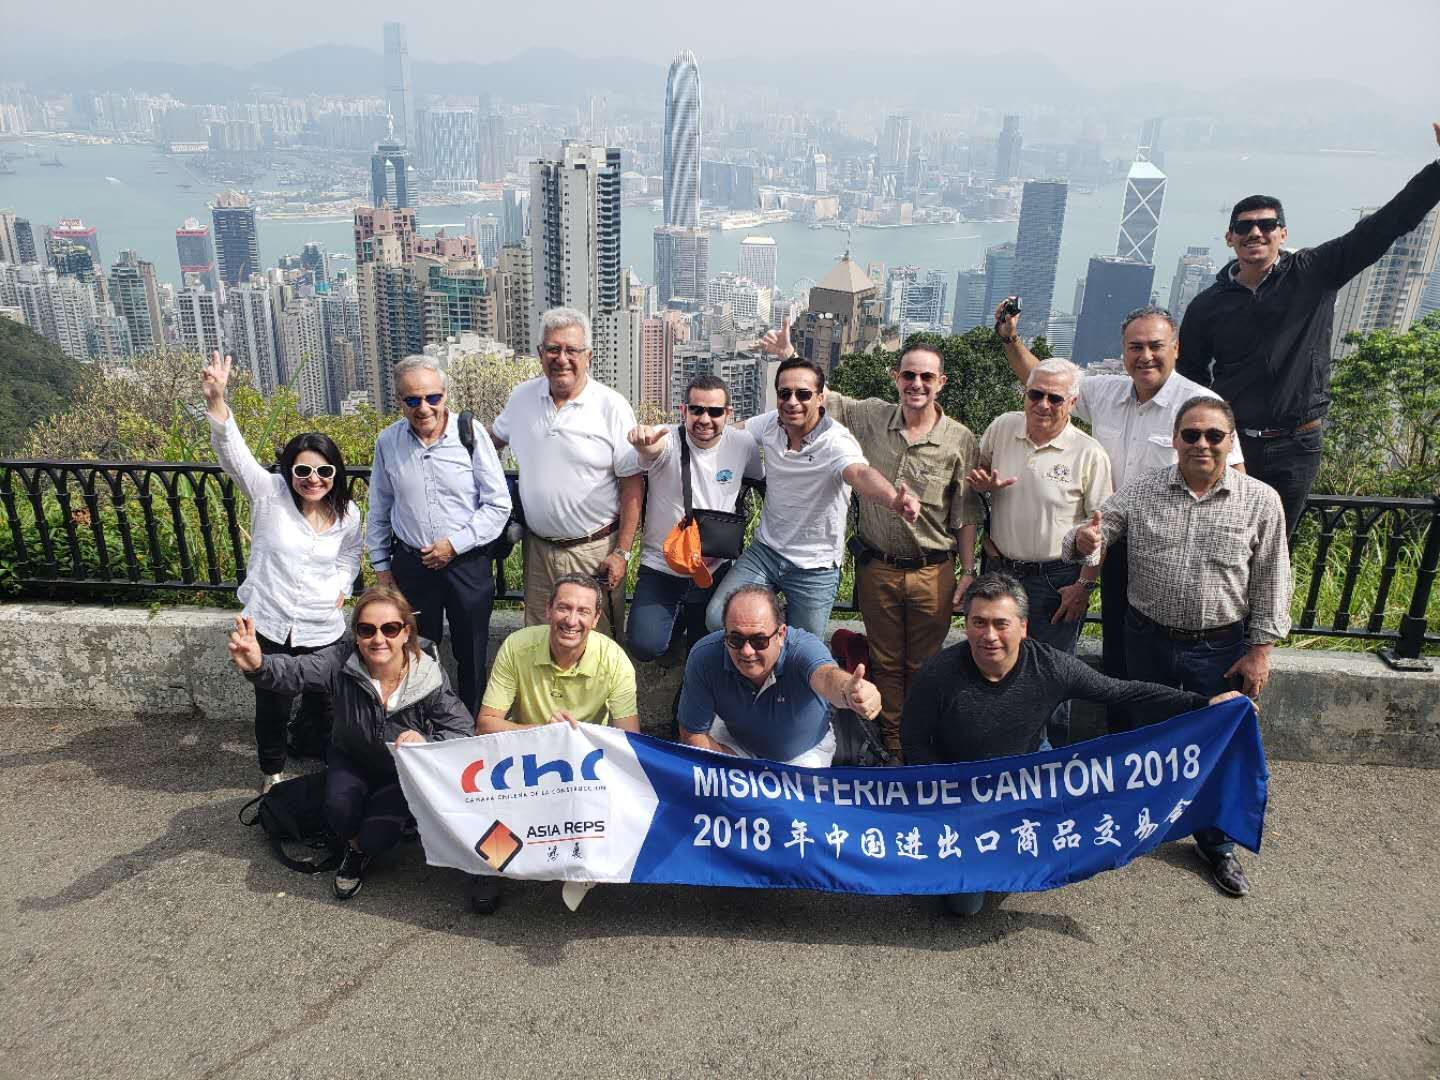 CChC partners travel to China to learn about the latest innovations in construction